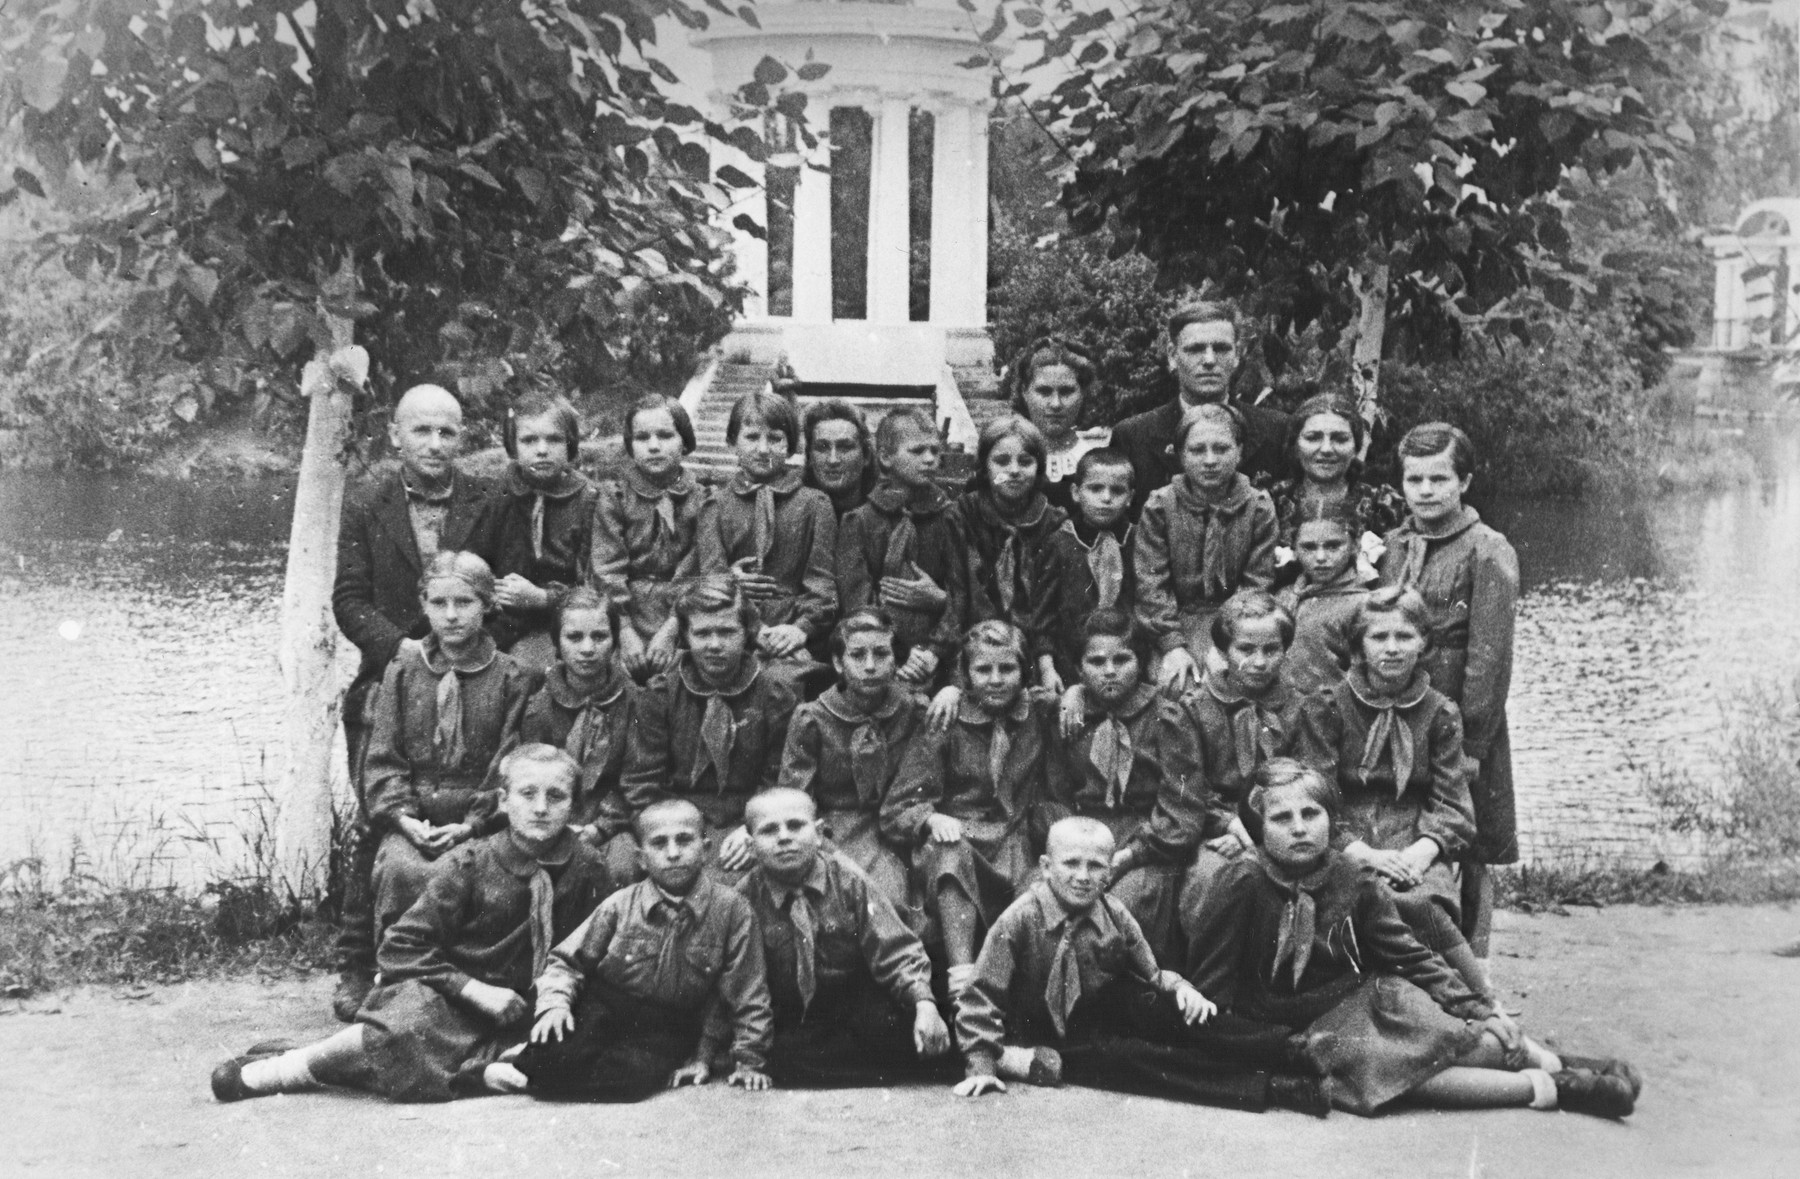 Polish children in an orphanage in the Soviet Union.  Standing on the top left, is the director, Marek Liwszyc, a Polish-Jewish refugee.